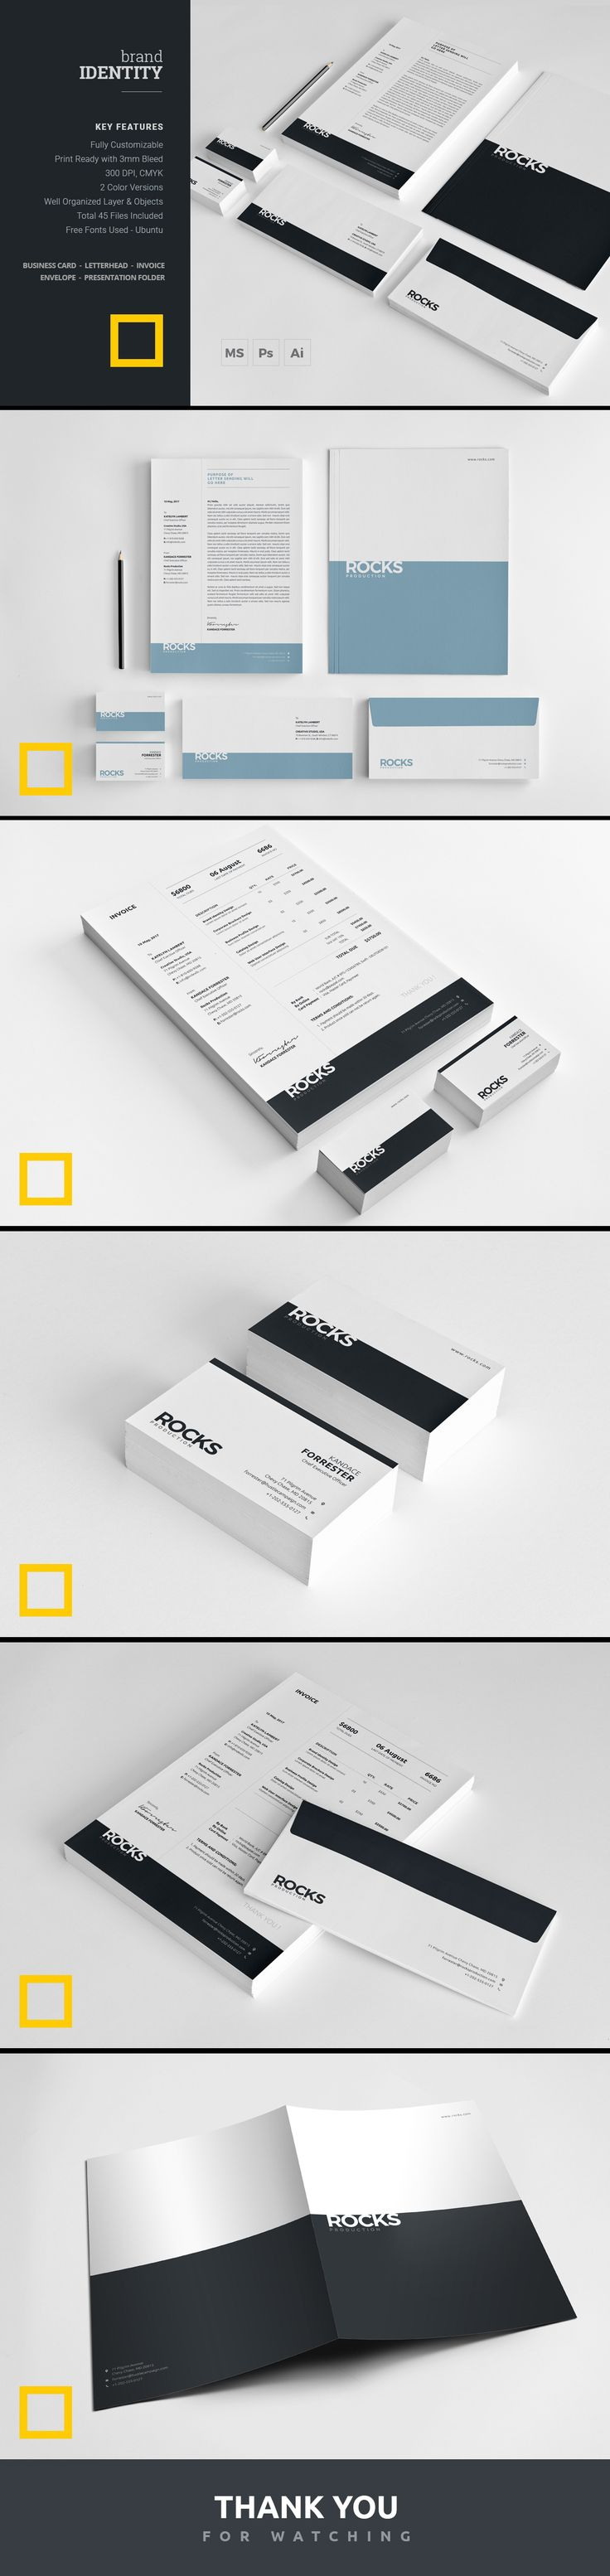 Identity Pack with minimal and clean look will create a fresh impression of your business which is essential for your corporate branding.  brand | branding | corporate stationary  | brand stationery | brand identity | corporate identity | business card | letterhead | invoice | modern identity | minimal identity | word | print ready  | identity pack | professional | office stationery